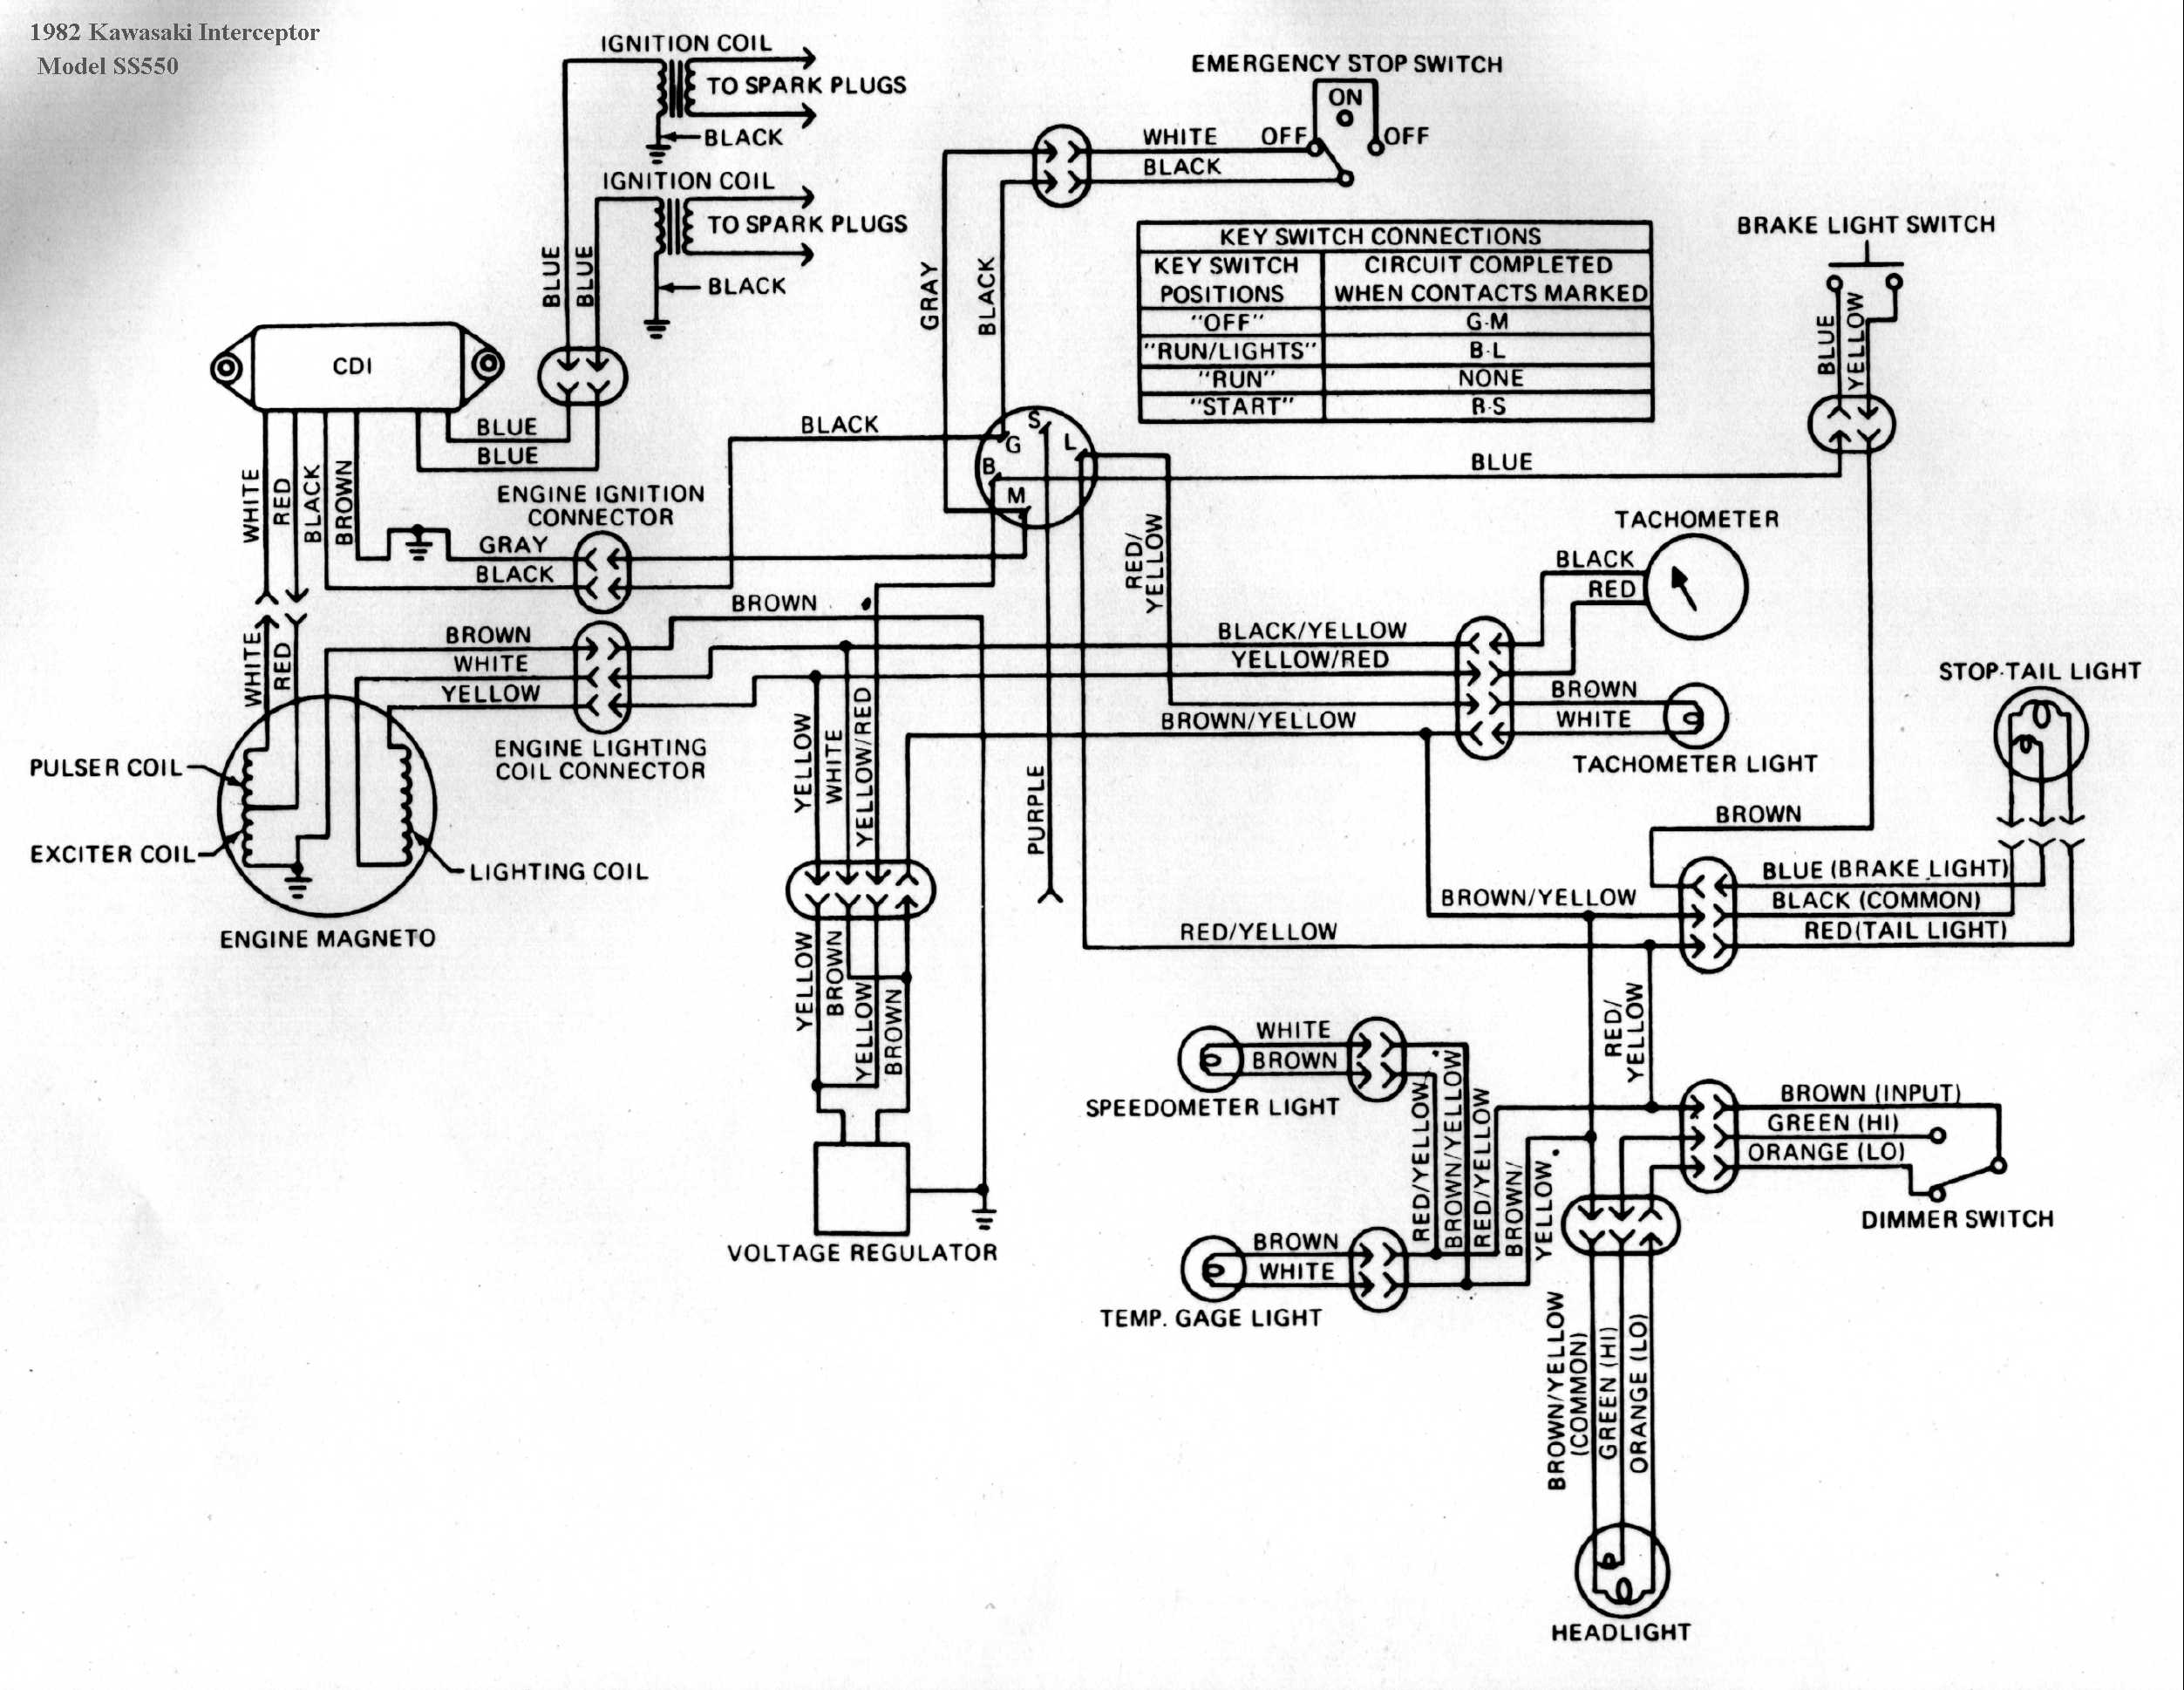 ss550 kawasaki 1980 kawasaki 440 ltd wiring diagram at bakdesigns.co